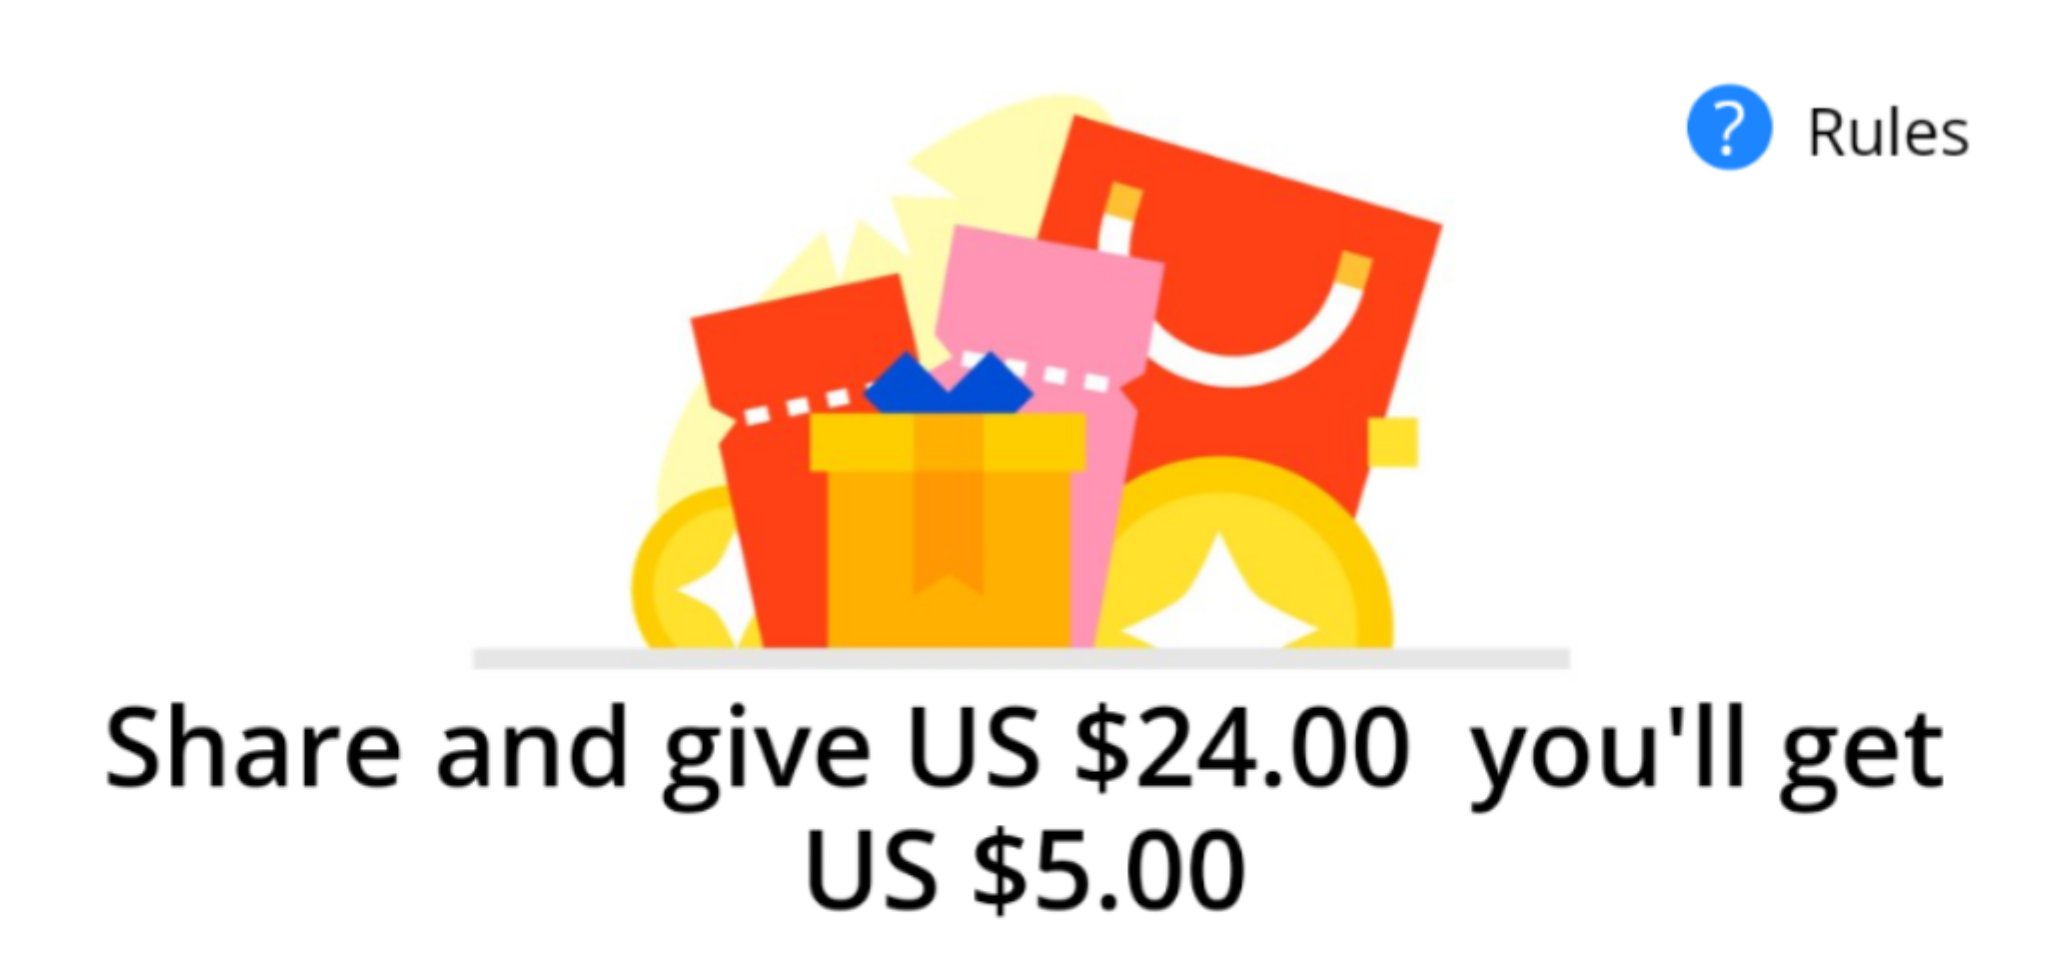 Get $24 to spend at AliExpress by using my referral code!